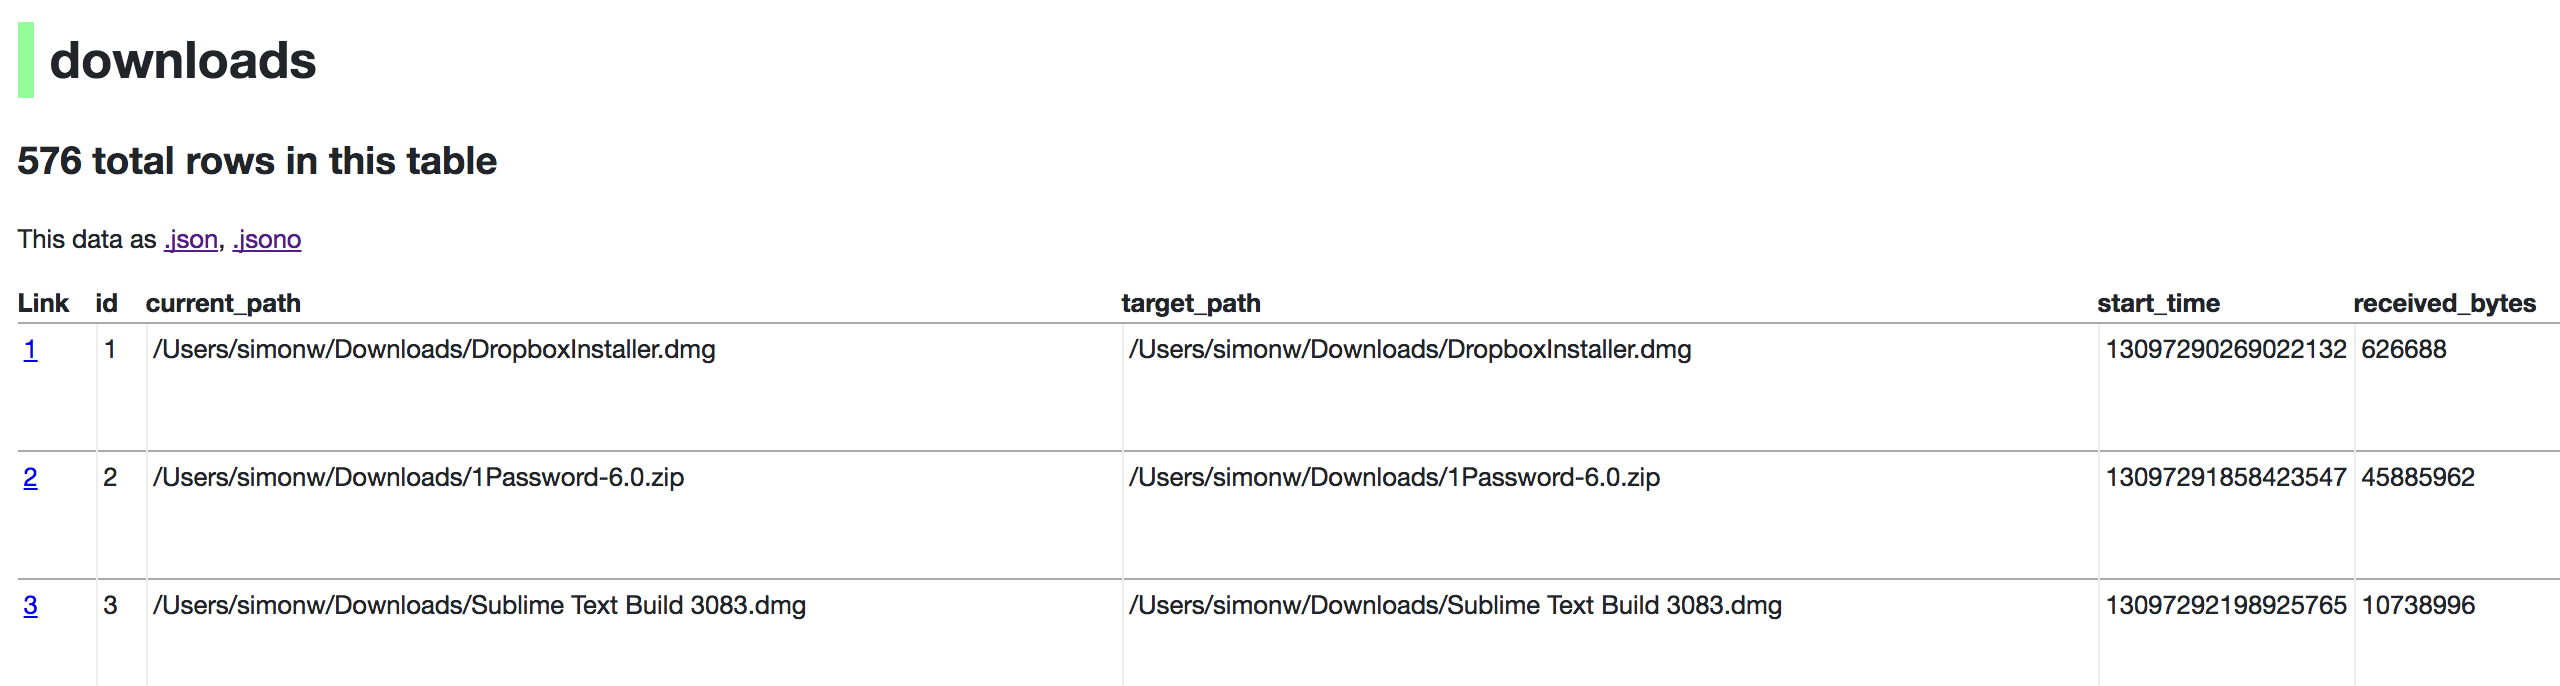 Downloads table rendered by datasette